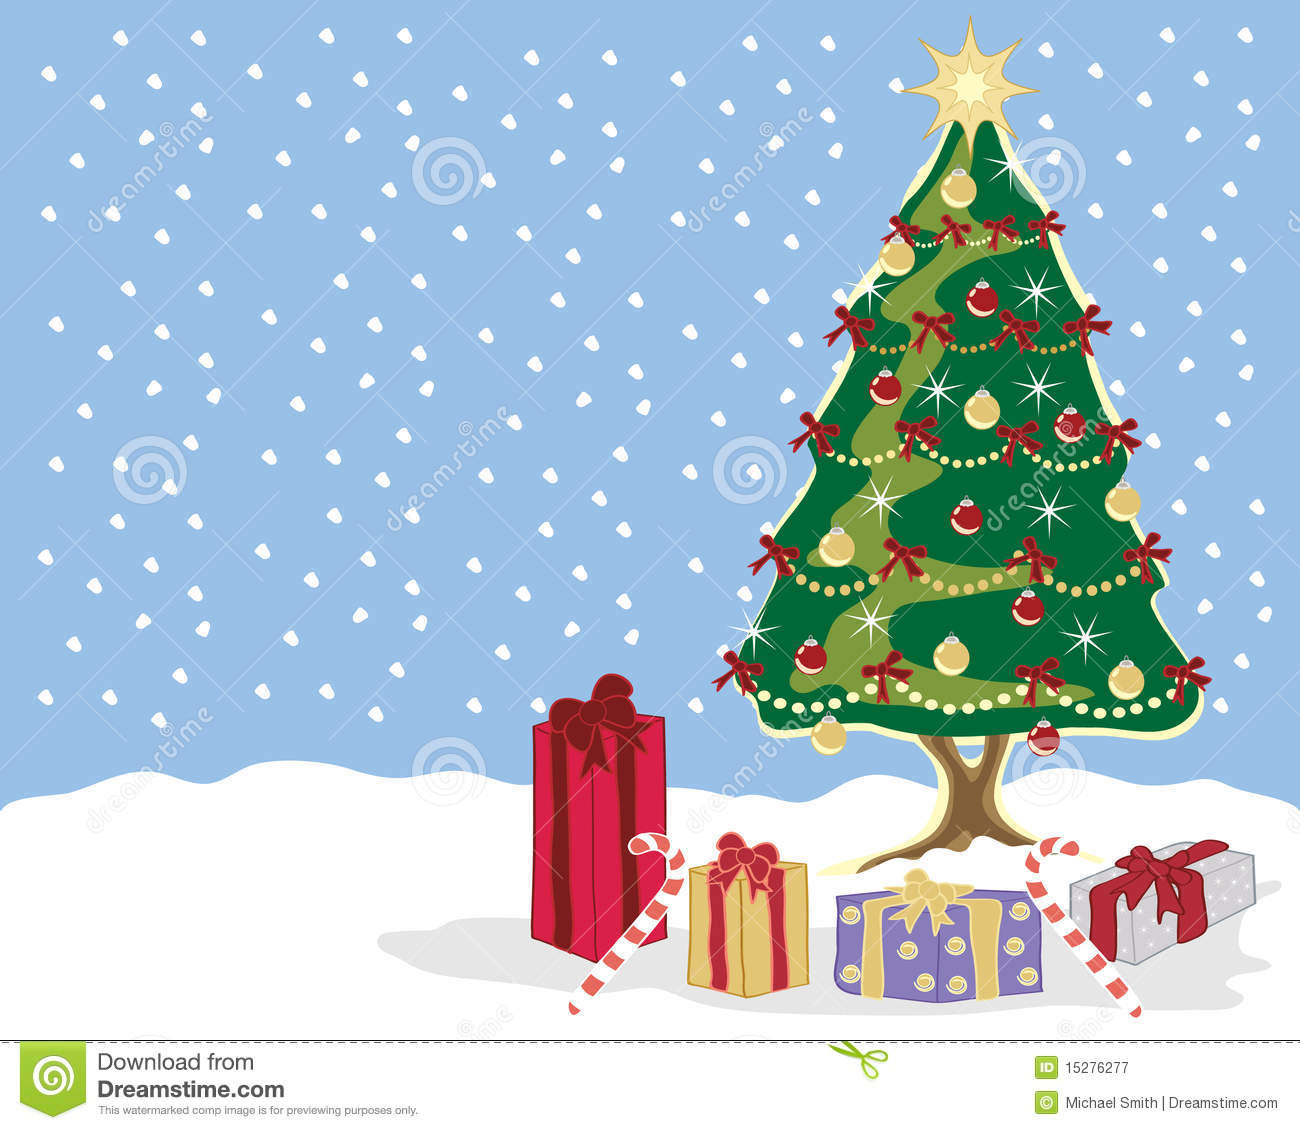 Christmas Scene Royalty Free Stock Photography - Image: 15276277